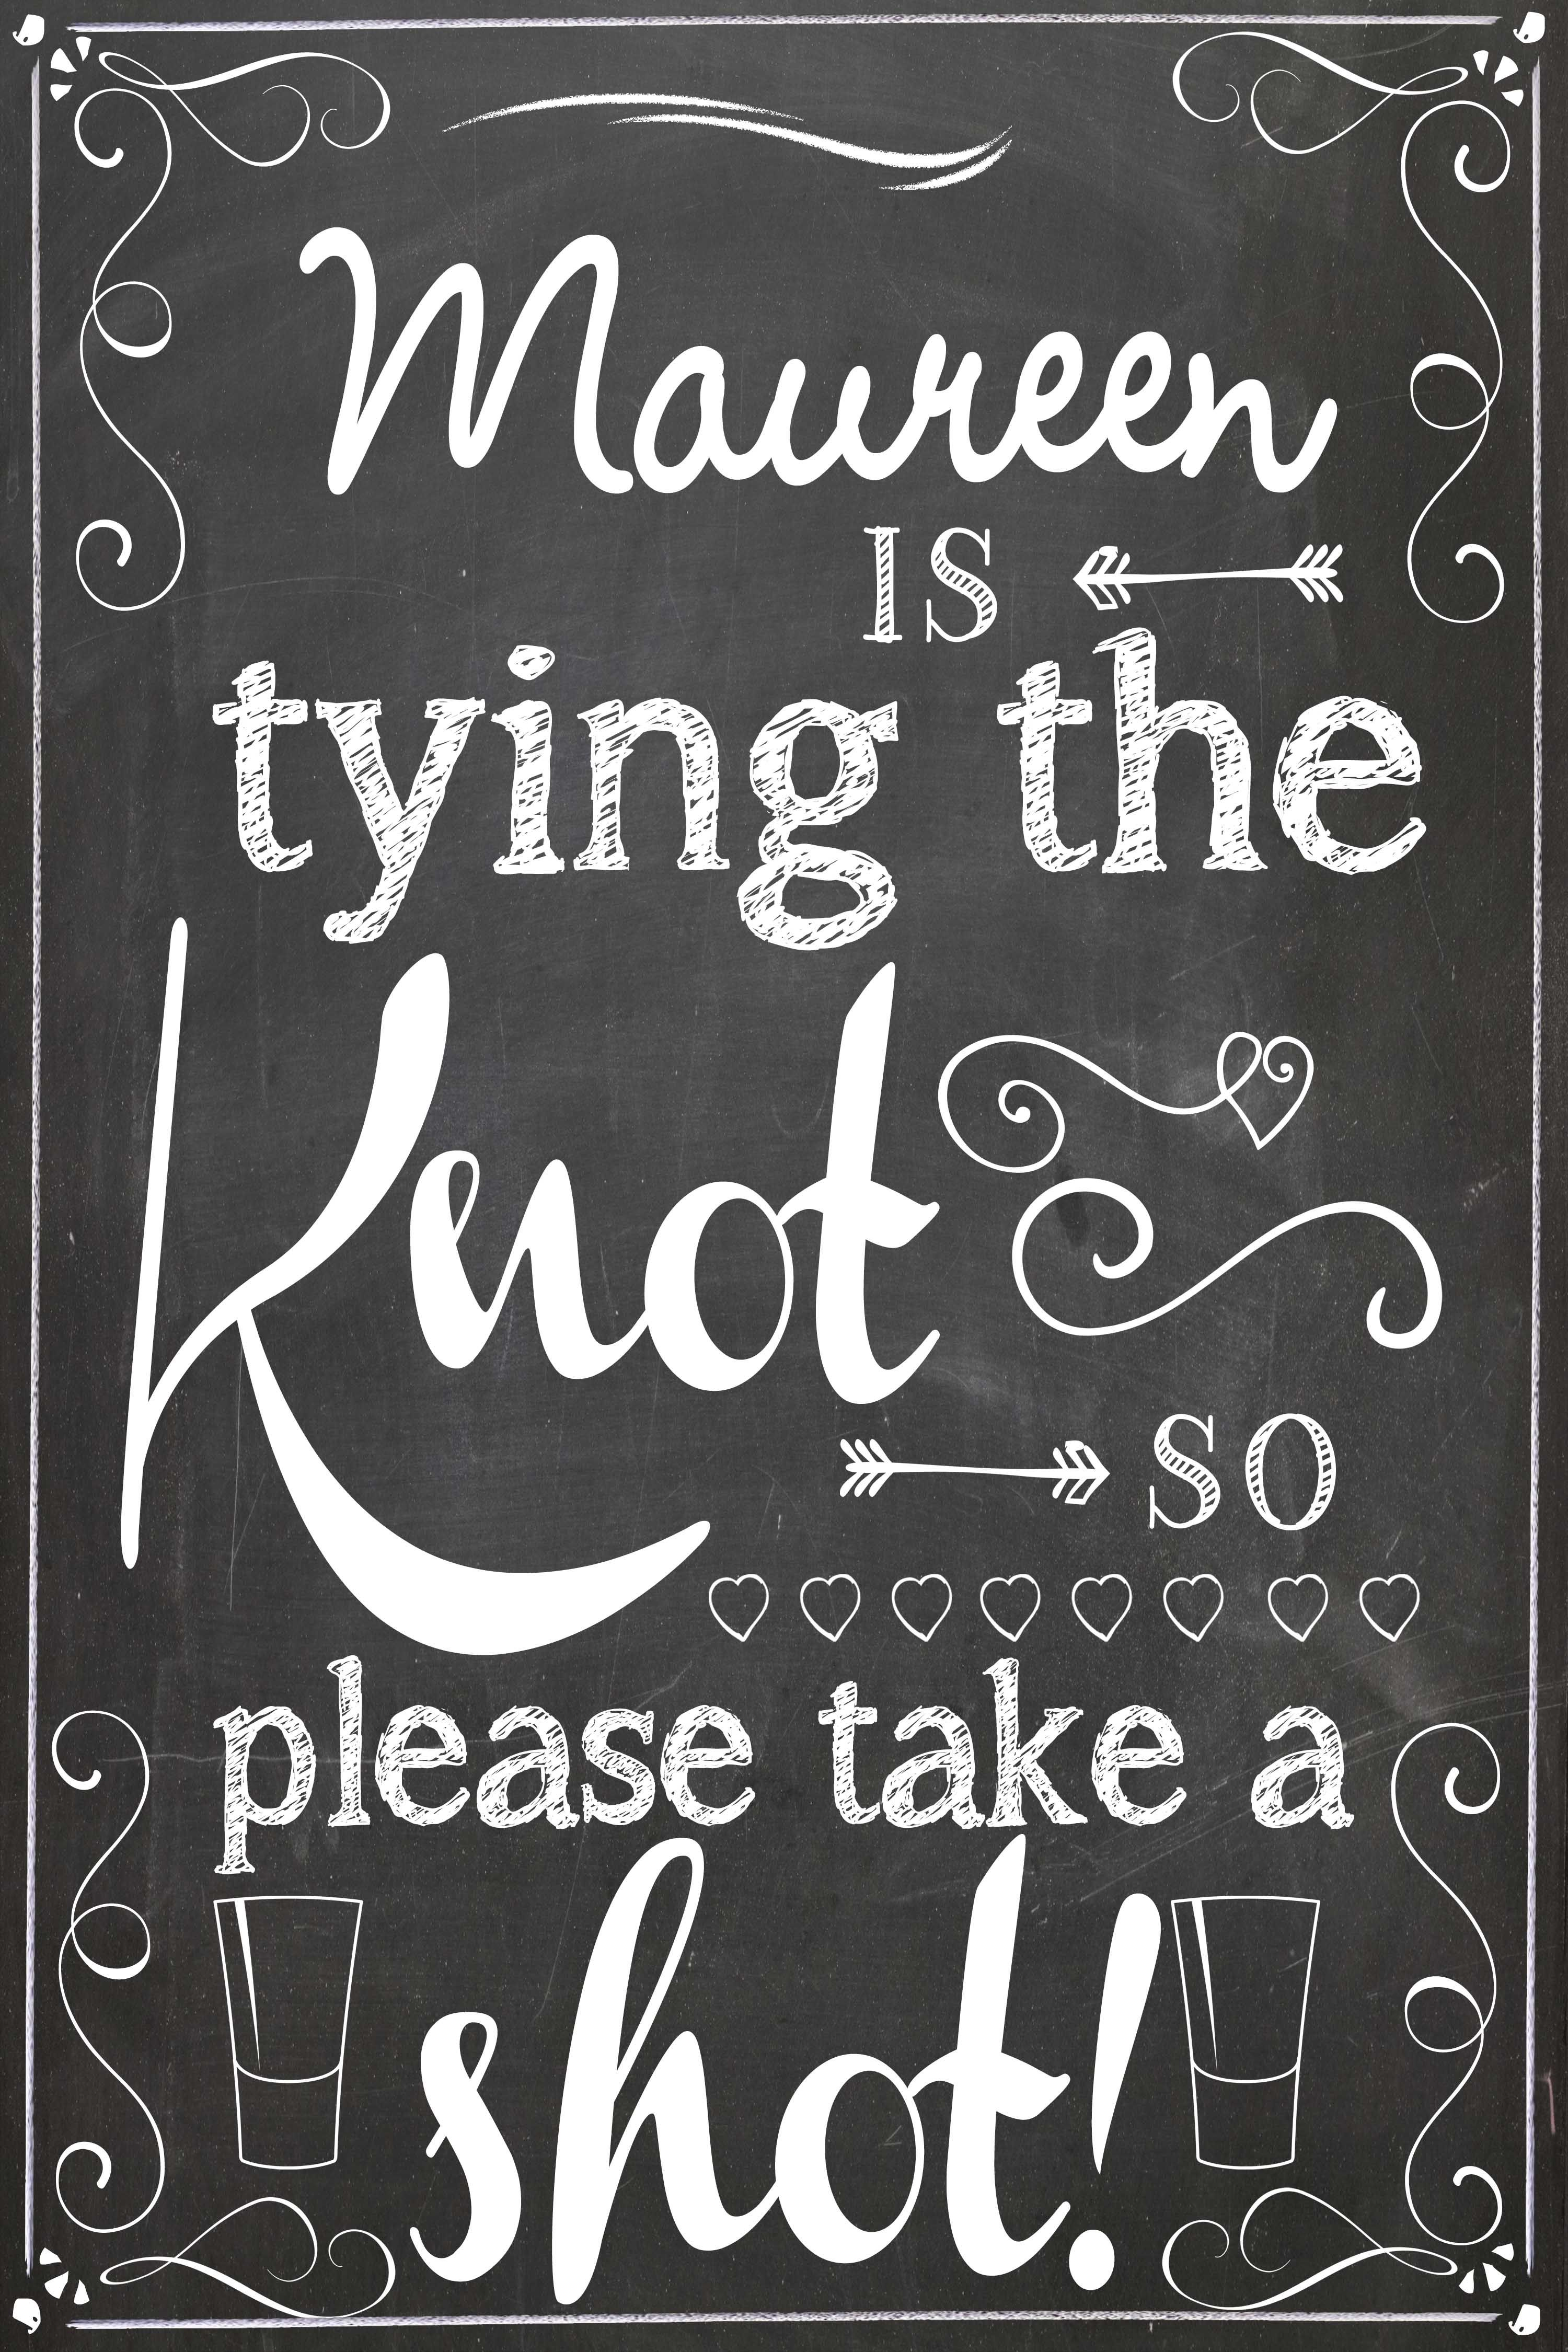 Tying the Knot so please take a shot sign Funny bridal